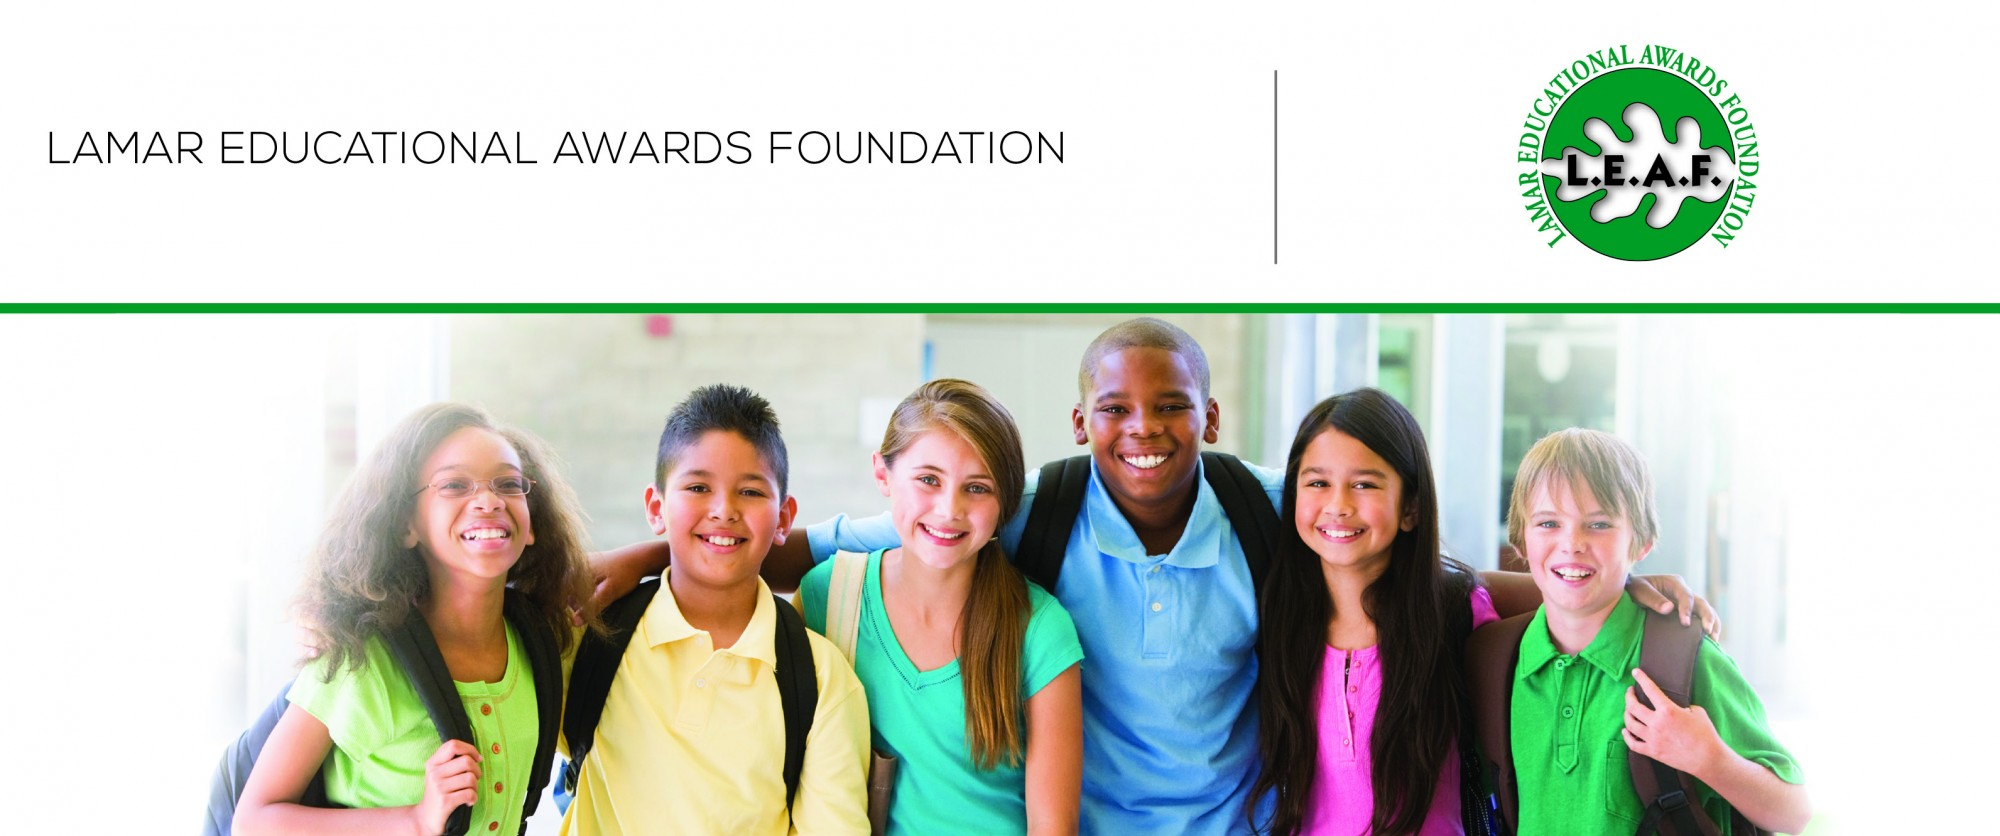 Lamar Educational Awards Foundation